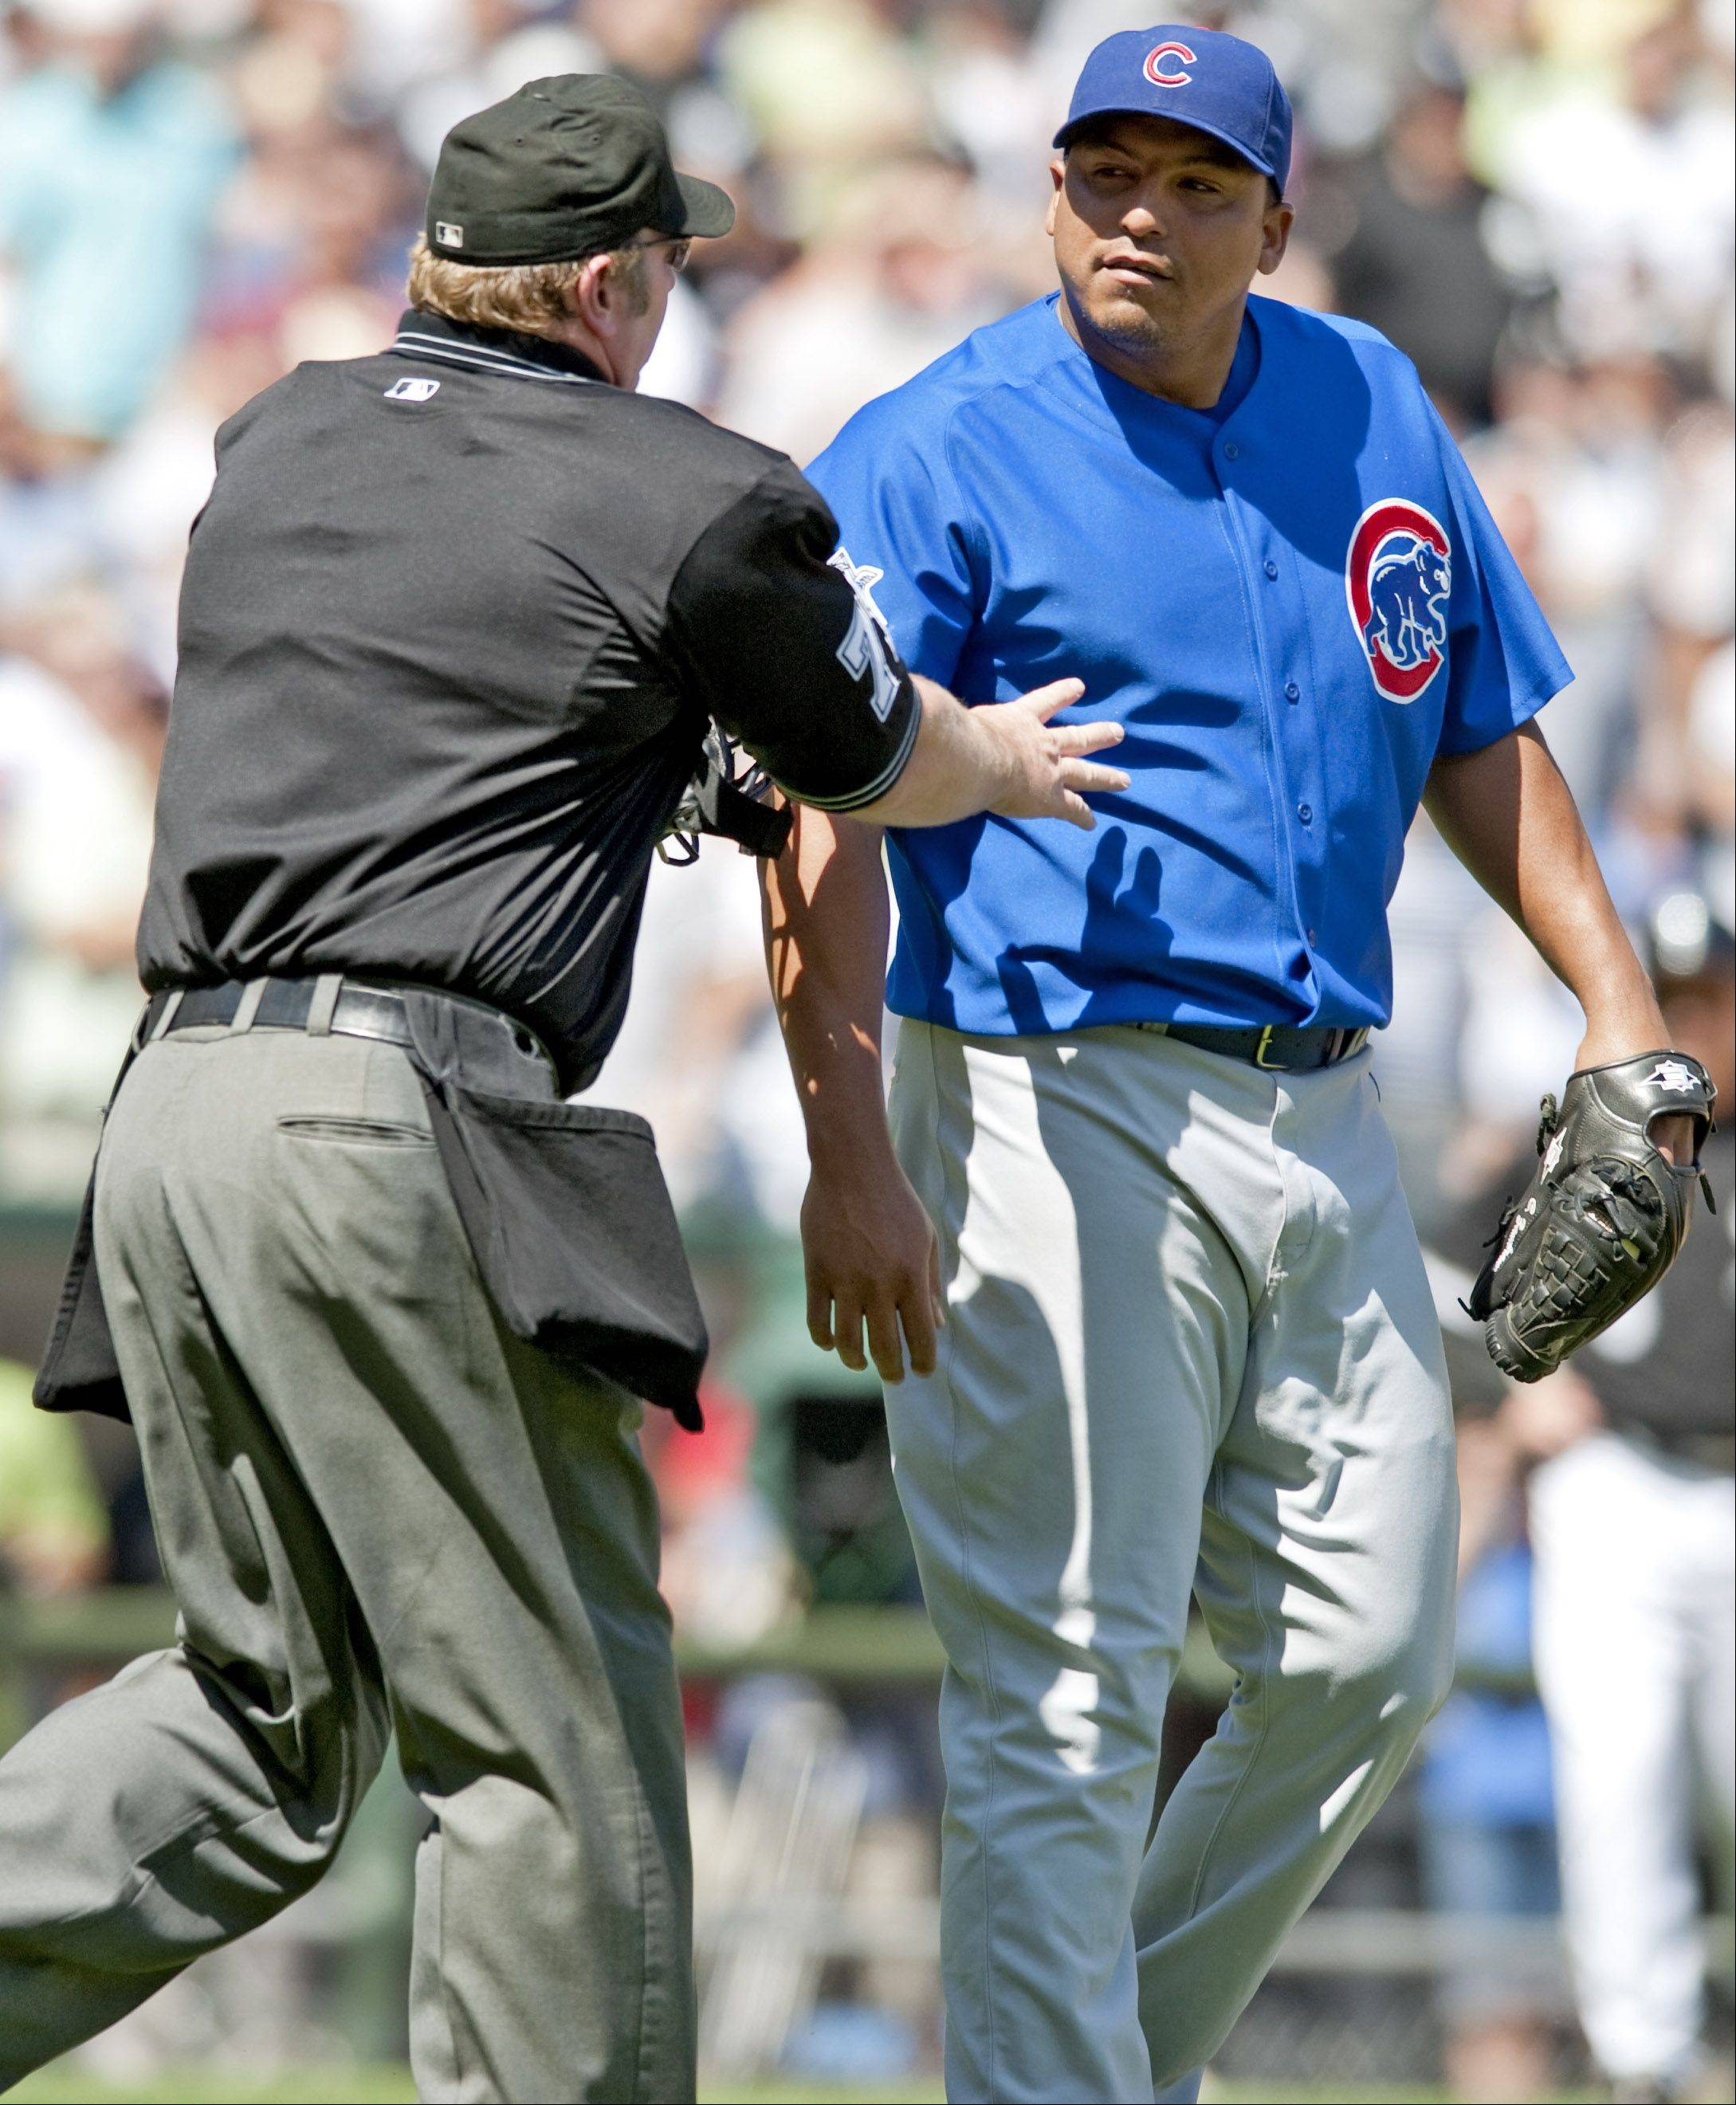 An official holds back Cubs pitcher Carlos Zambrano as he and Sox center fielder DeWayne Wise exchange words with one another after getting hit by a pitch during the sixth inning at U.S. Cellular Field on Sunday in Chicago.